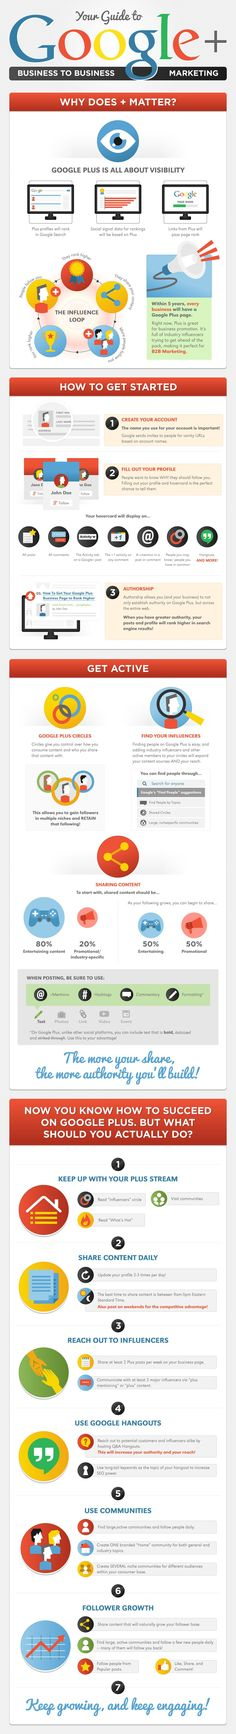 The Complete Guide to Google+ for B2B Marketing [Infographic]